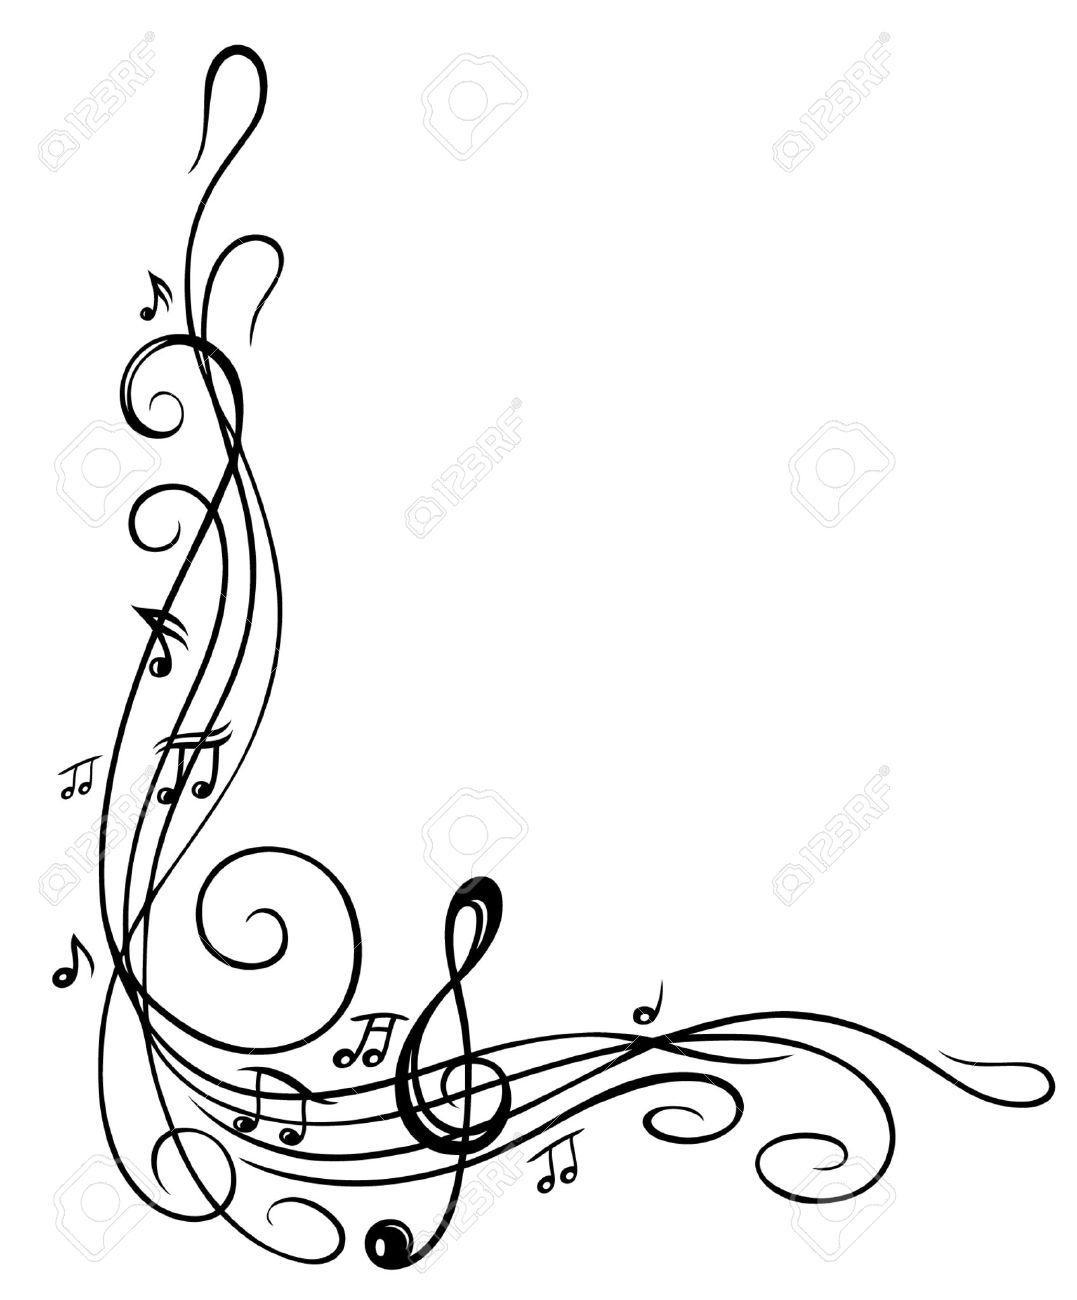 Clef with music sheet and music notes, border Standard-Bild - 24560889